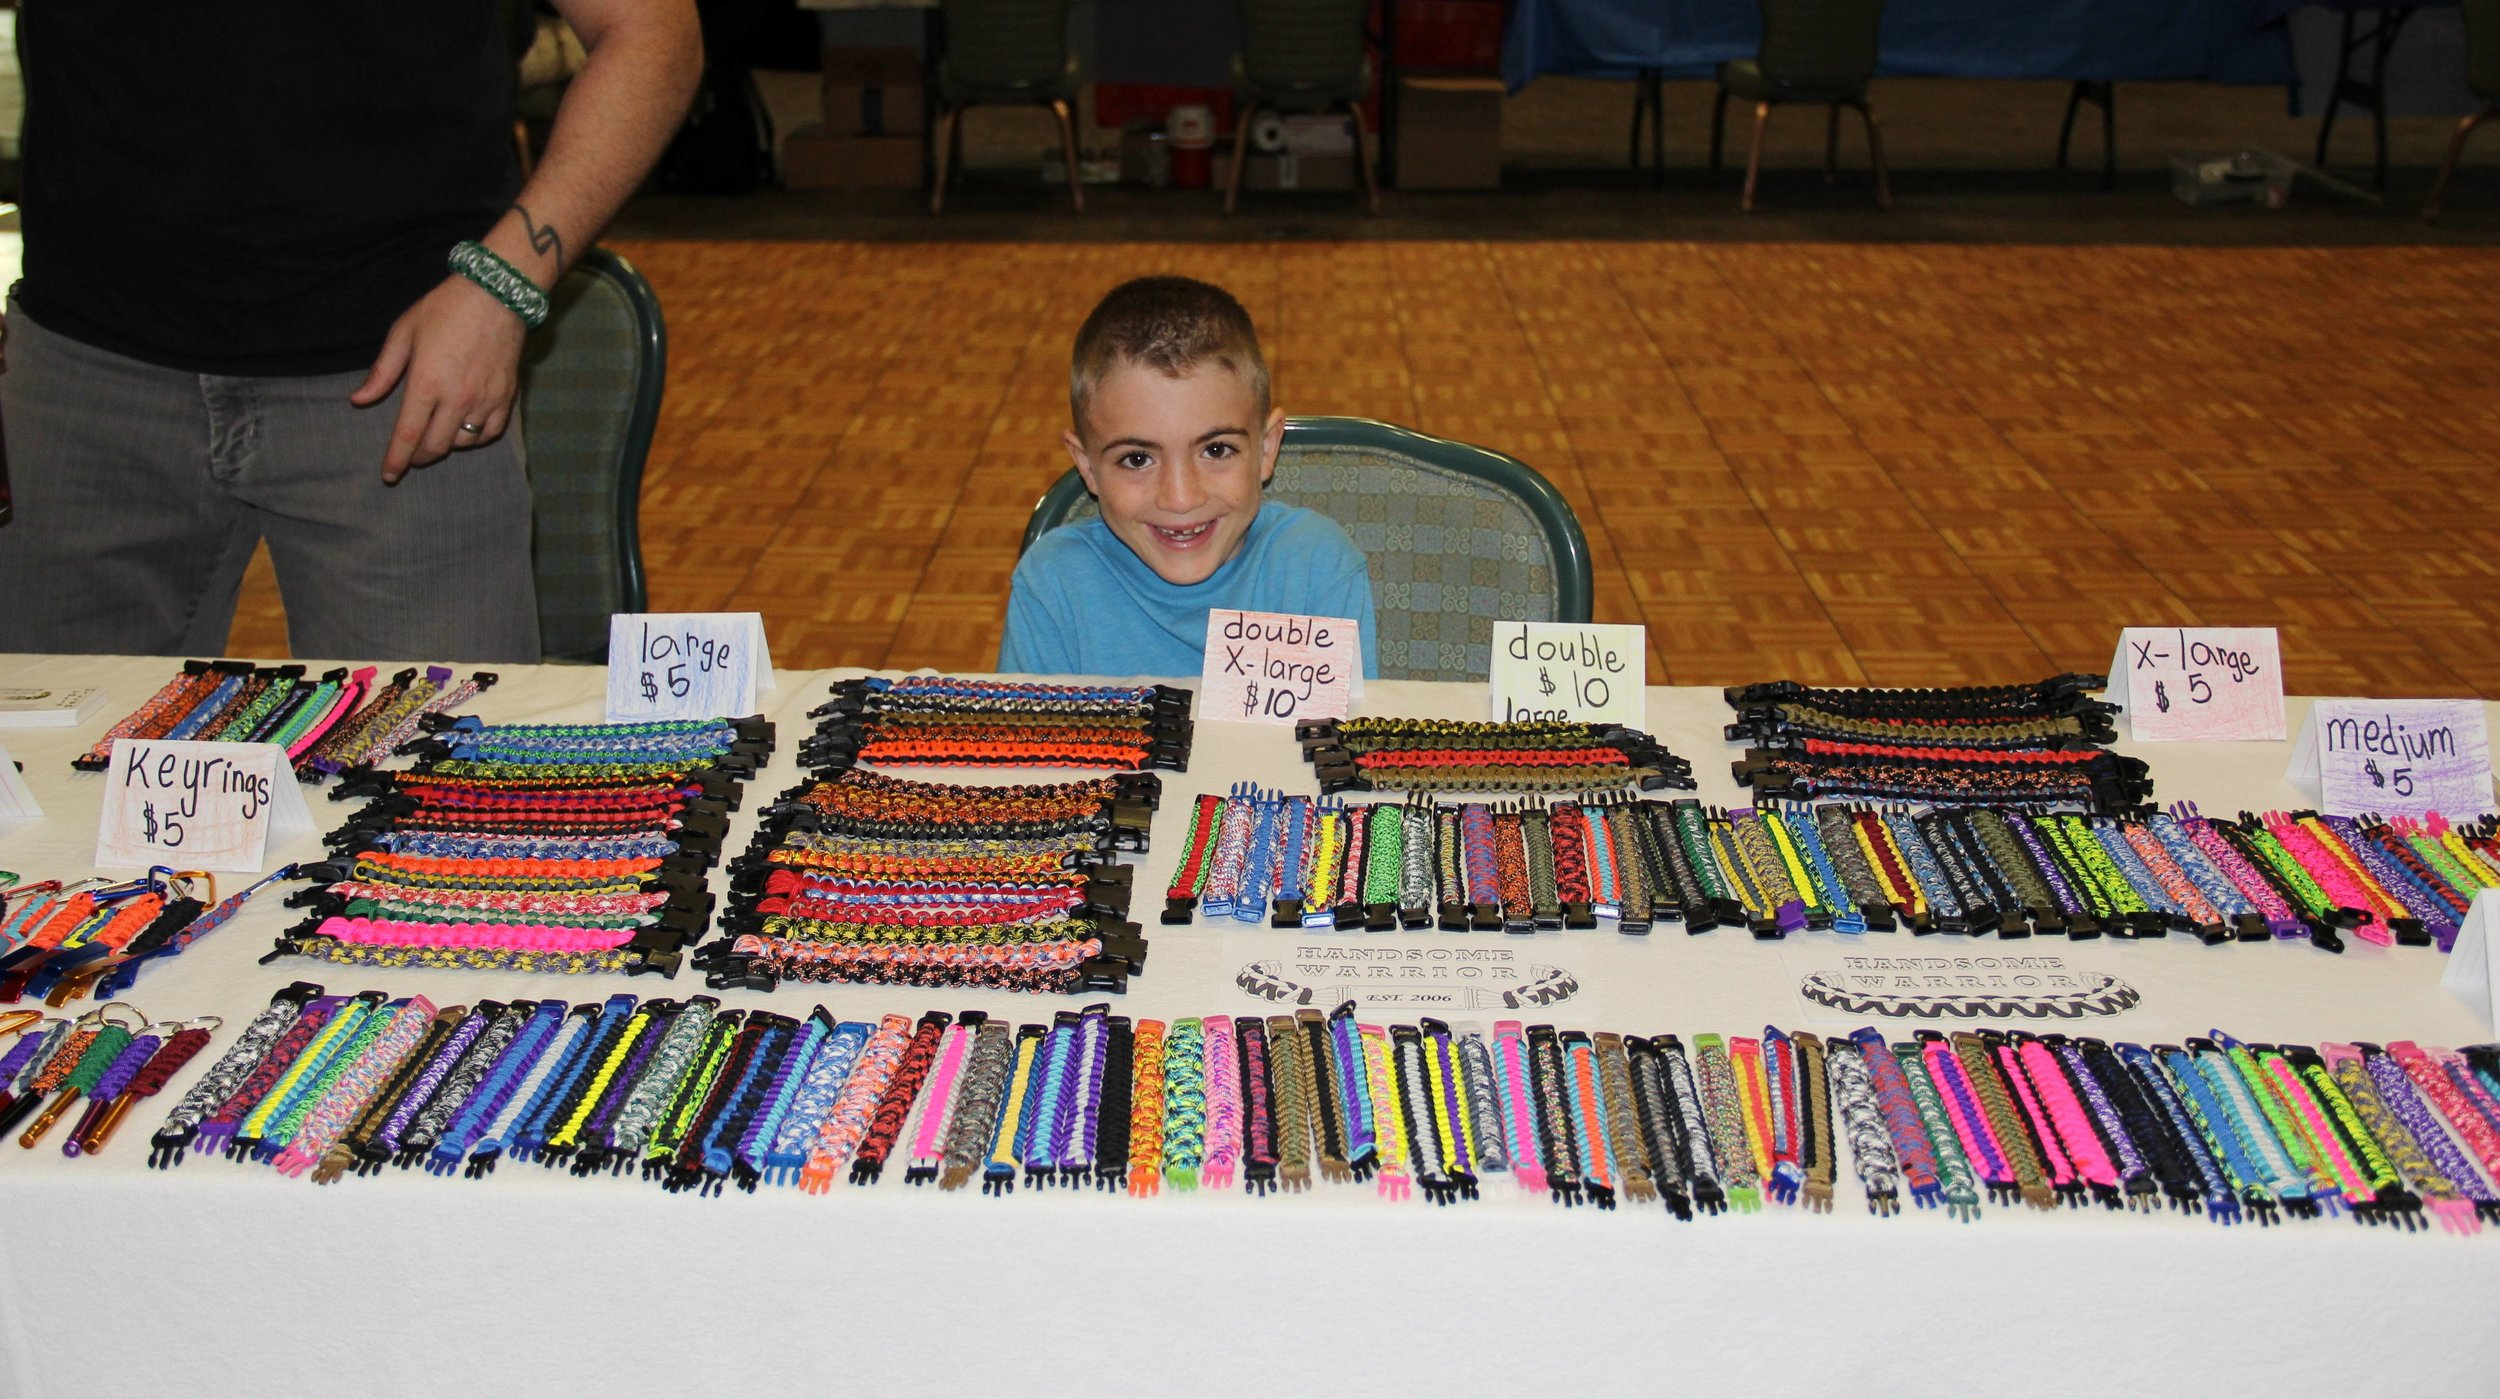 Guantanamo Bay craft fair 2014